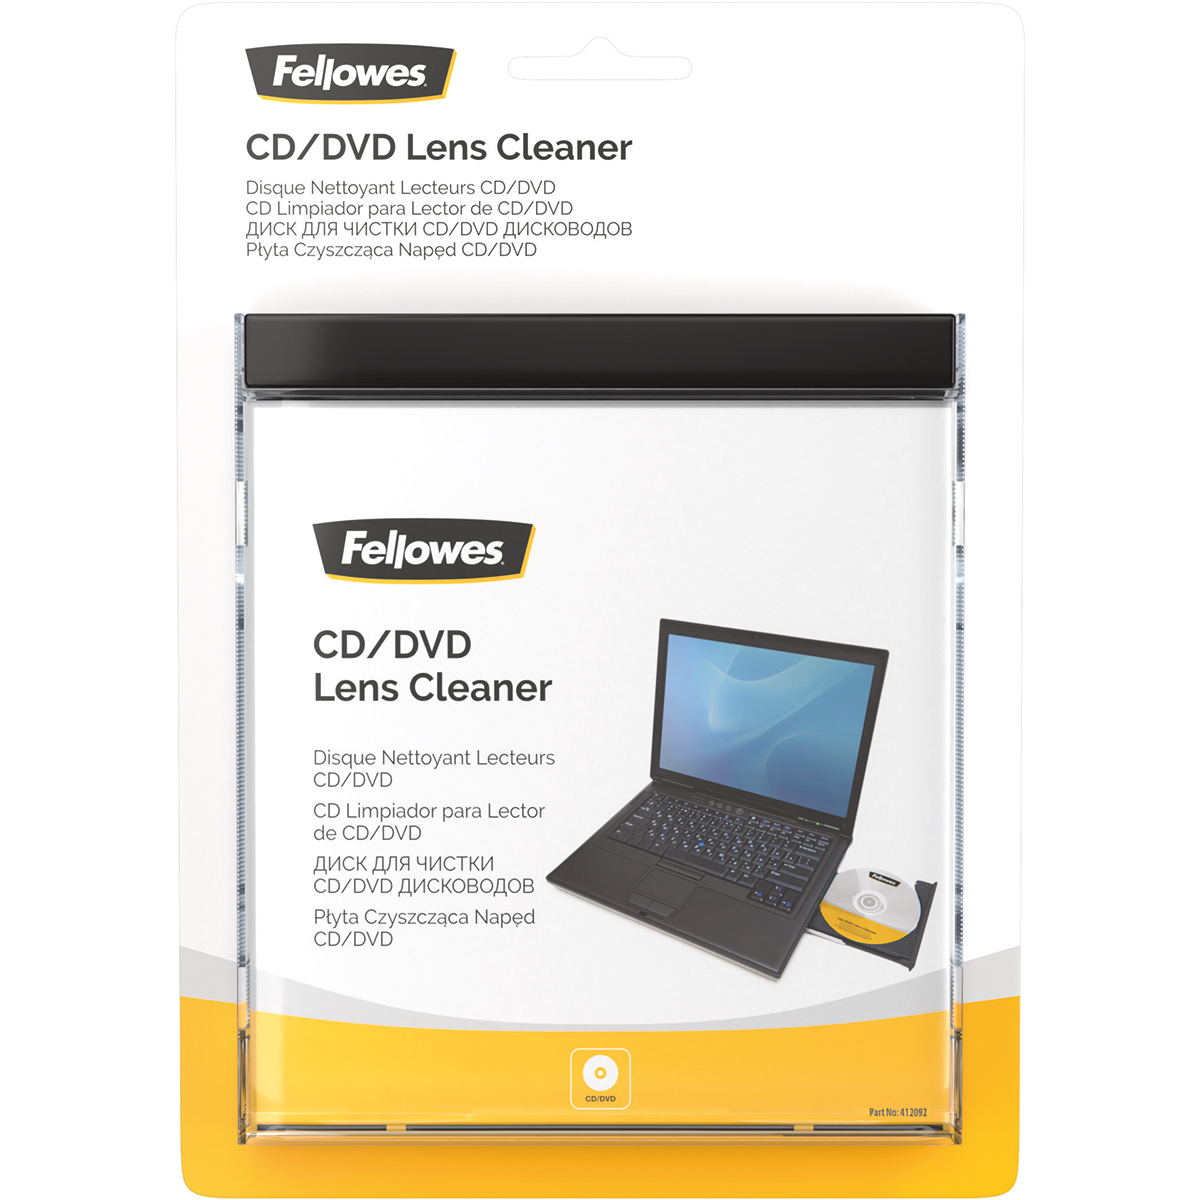 Fellowes 99761 CD and DVD Lens Cleaner